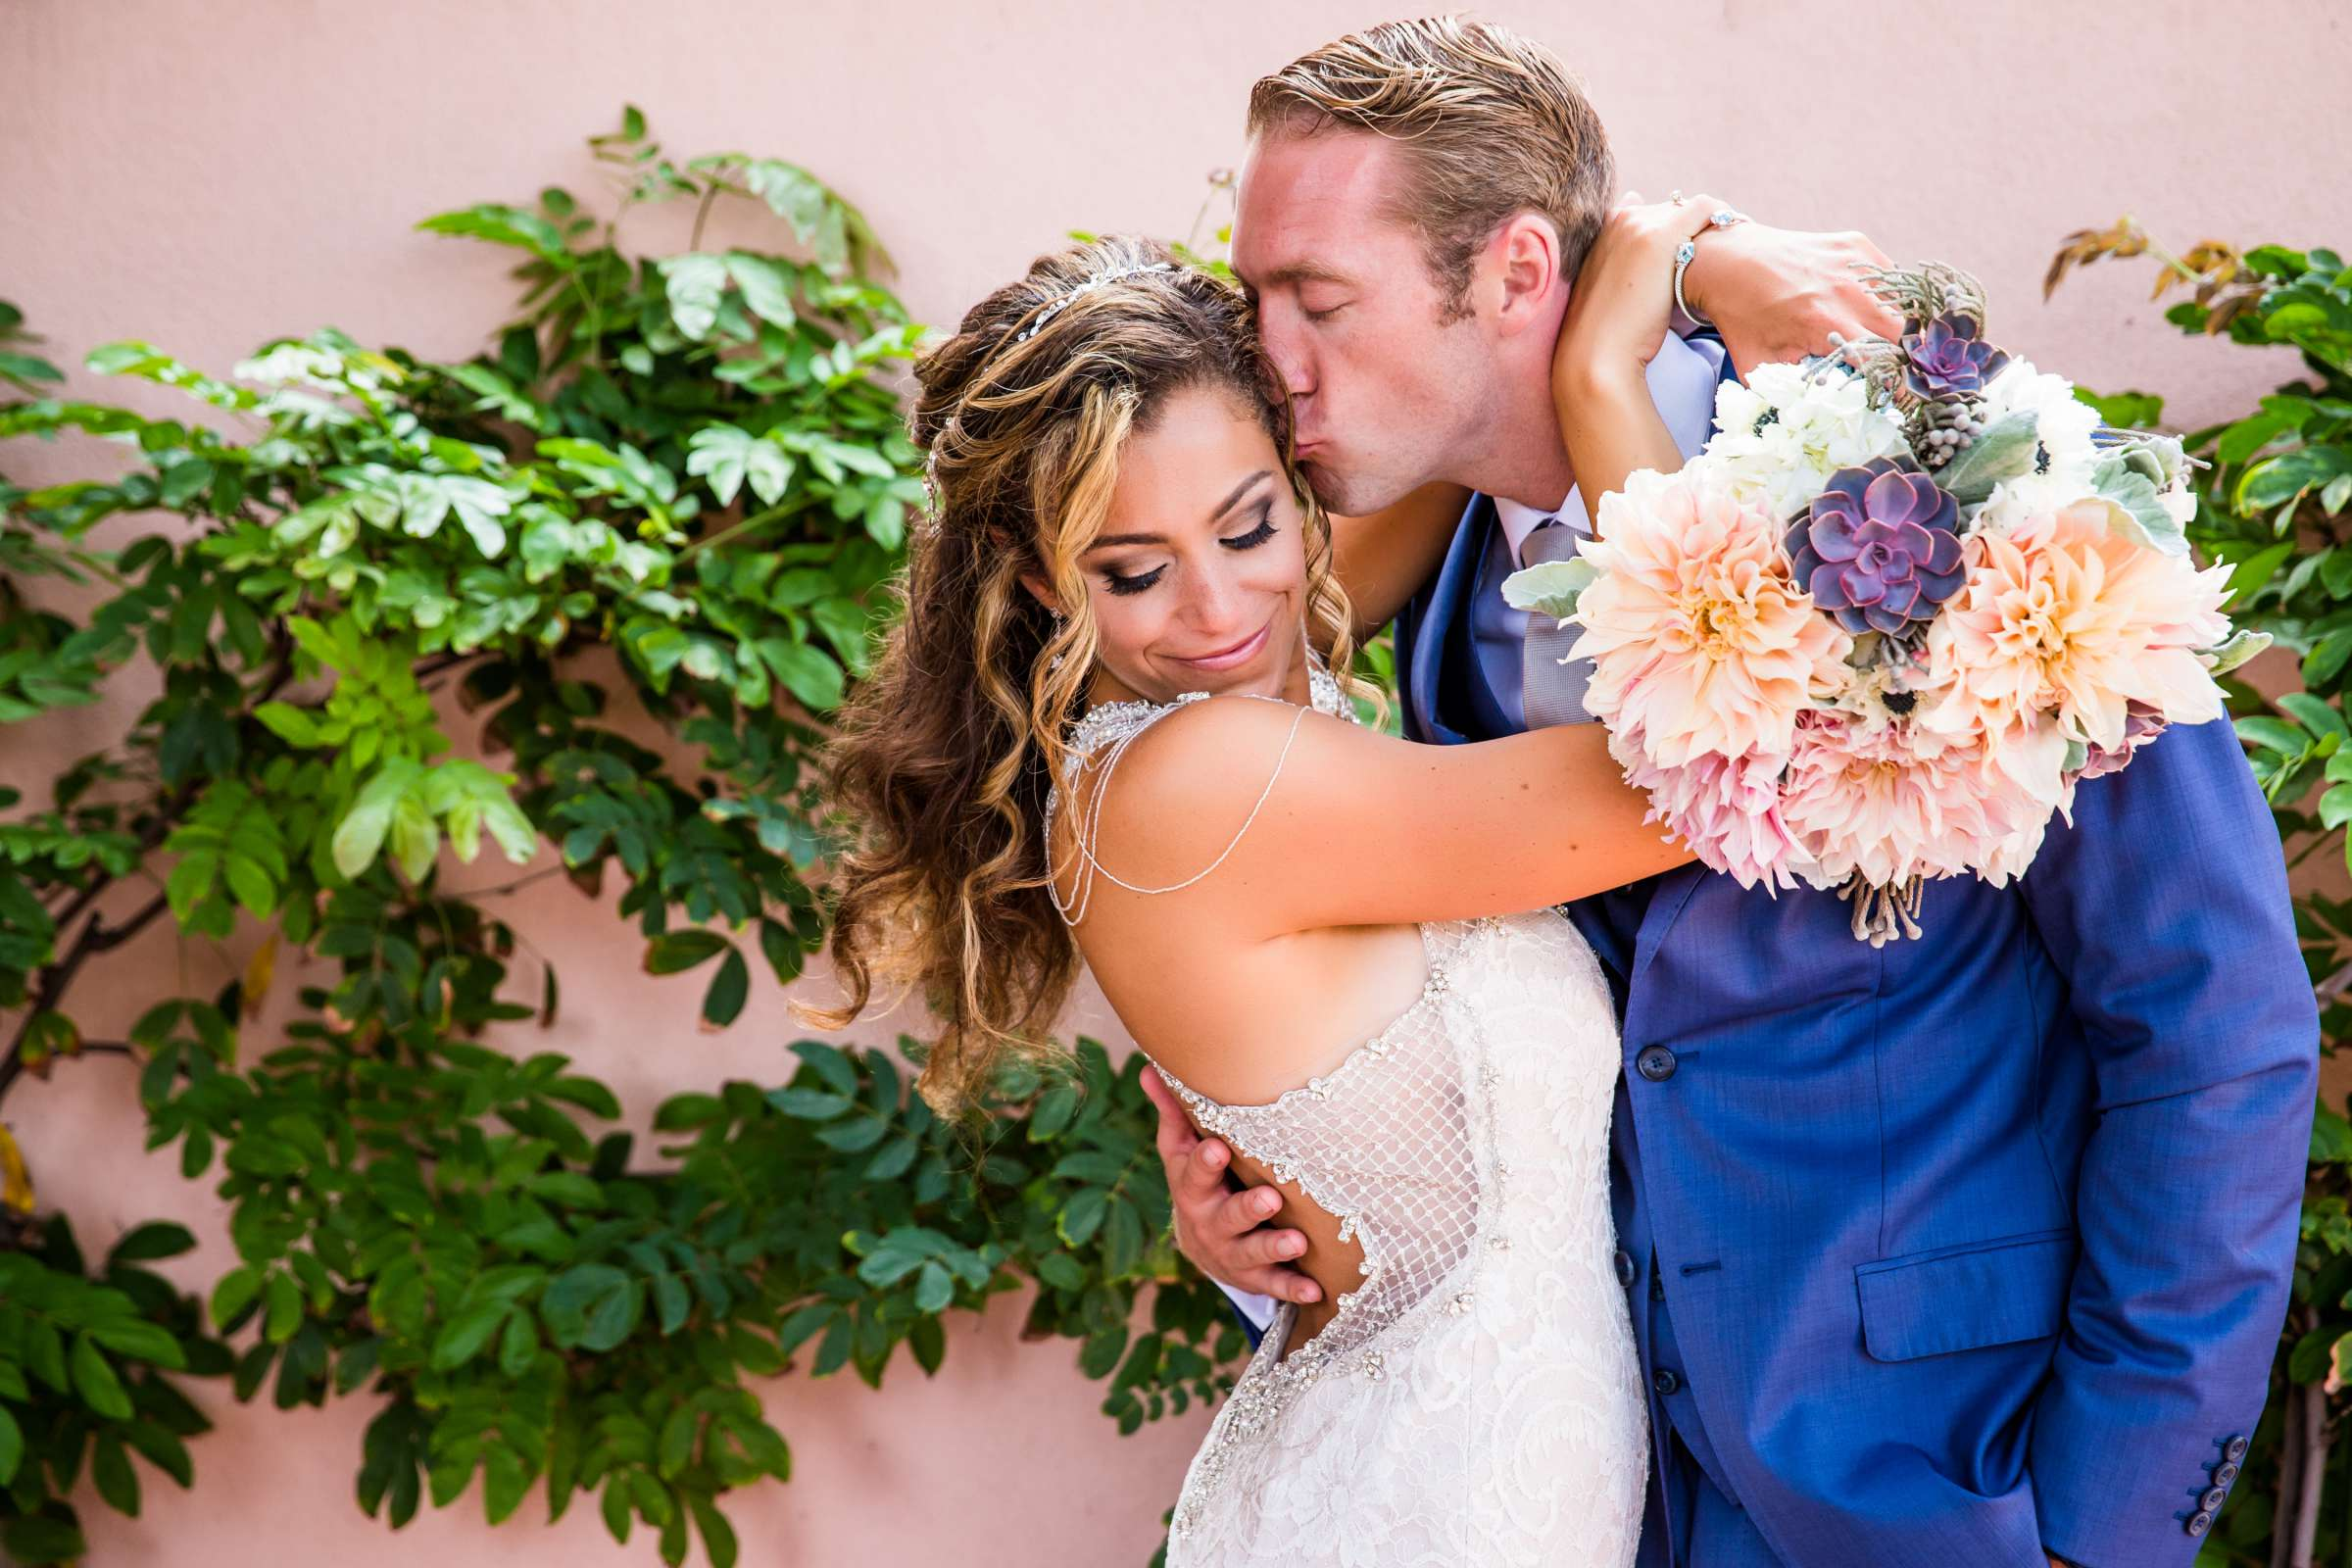 La Valencia Wedding coordinated by SD Weddings by Gina, Nicole and Ryan Wedding Photo #244571 by True Photography